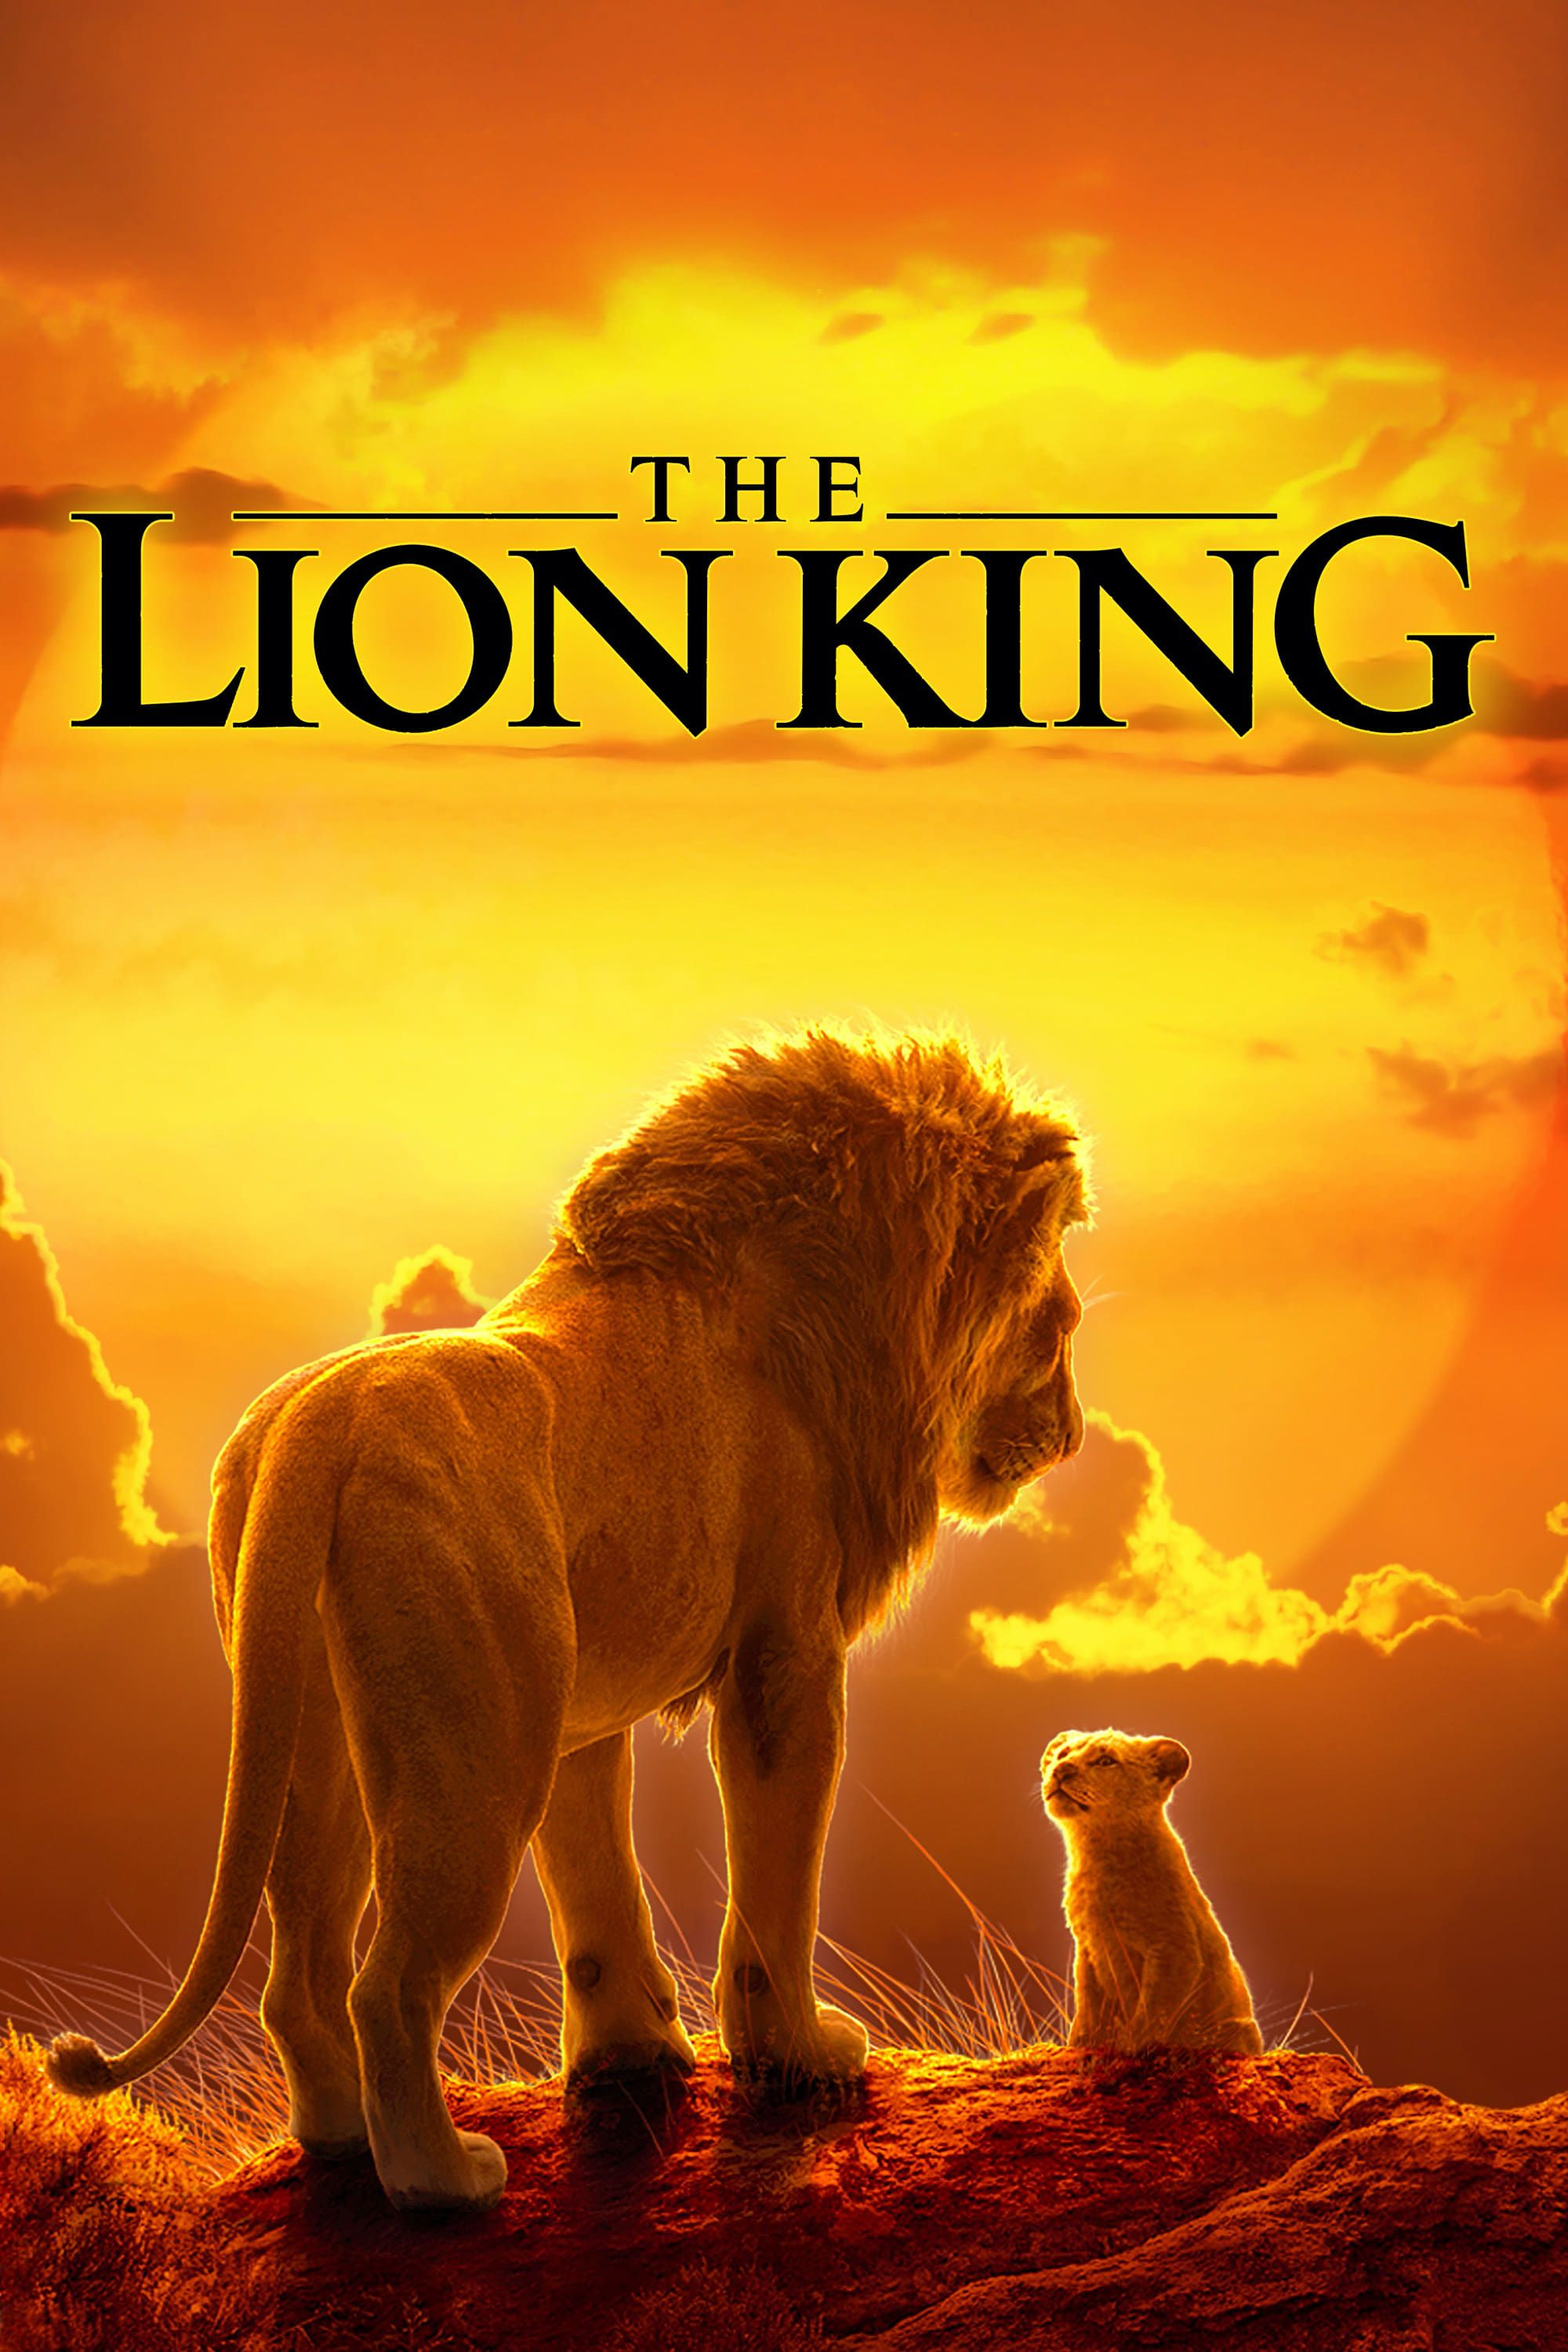 Title The Lion King 2019 Released 19 Jul 2019 Genre